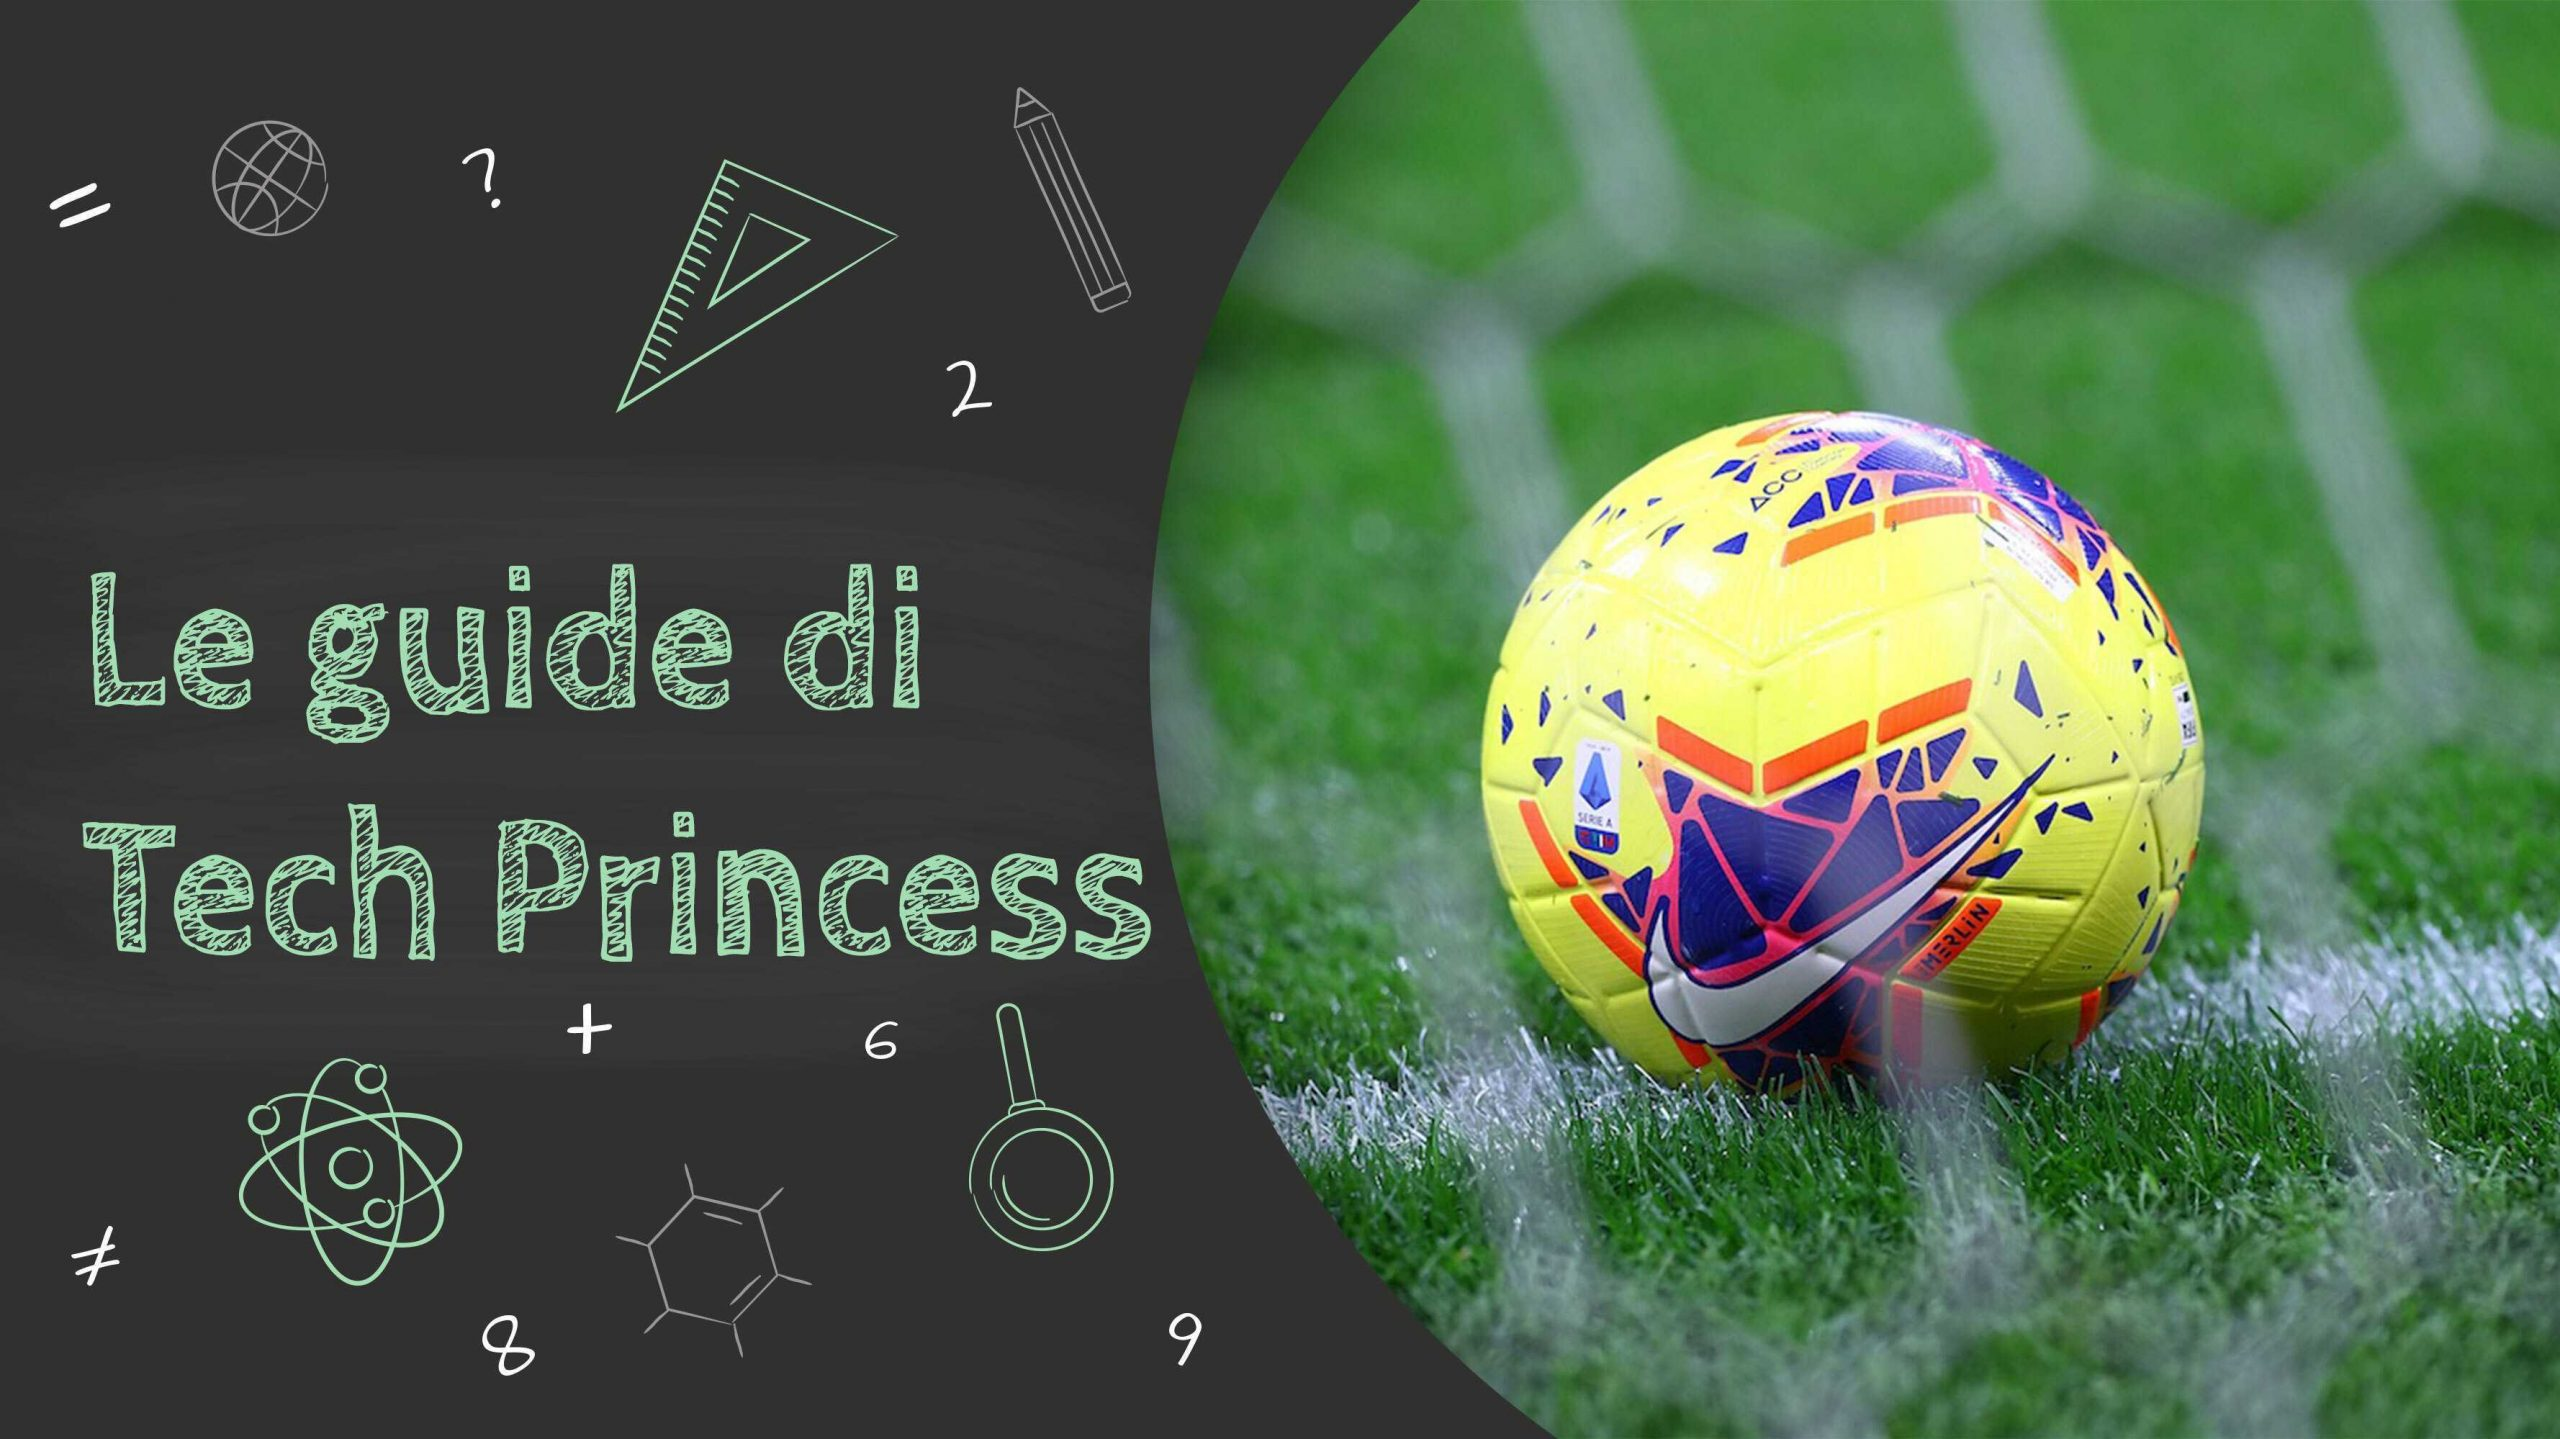 Le guide di Tech Princess - Come vedere il calcio in streaming legalmente thumbnail